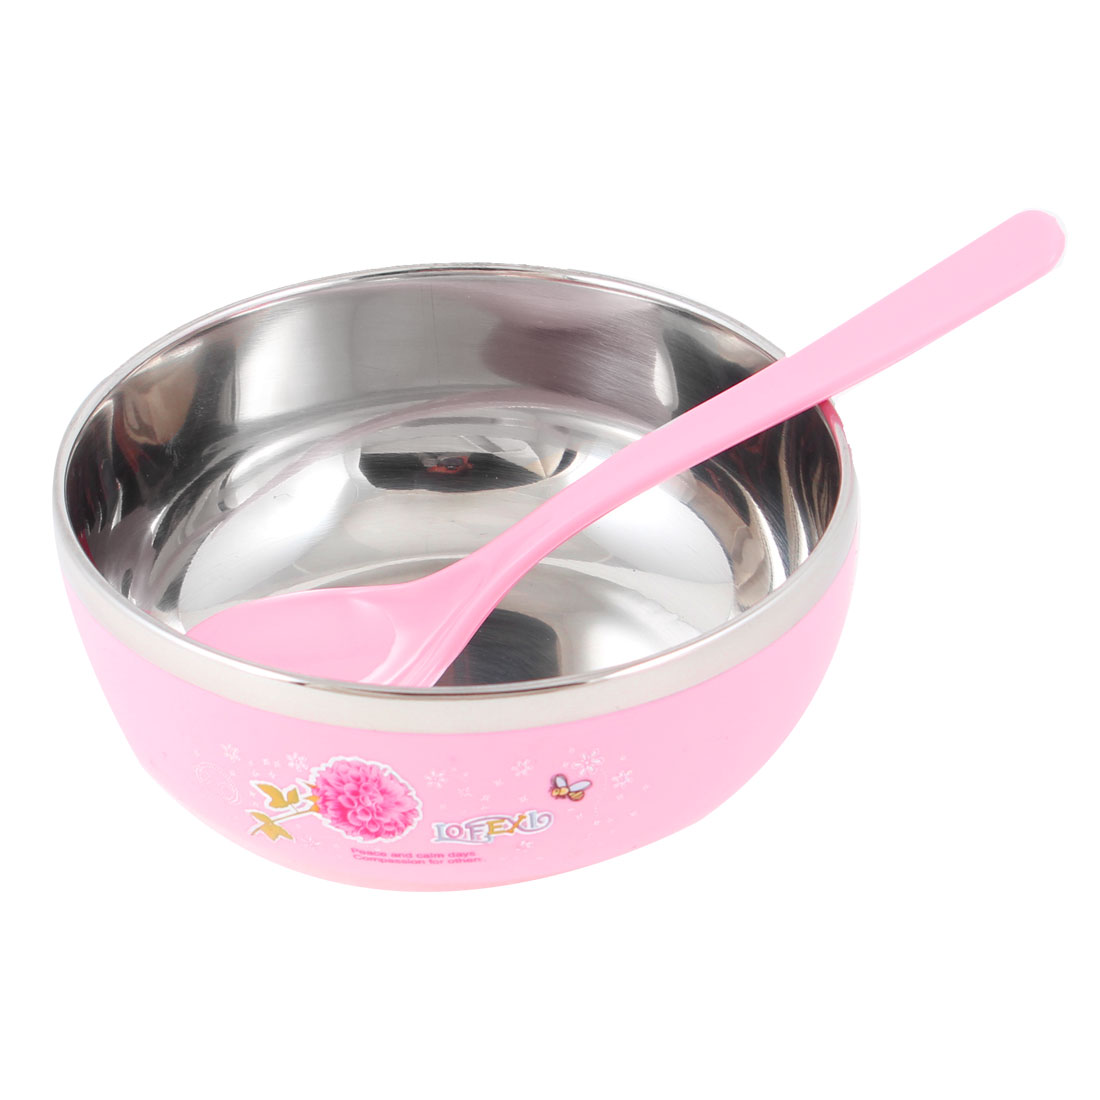 "Pink Silver Tone 4.3"" Dia Round Shape Cereal Dessert Dinner Rice Bowl"